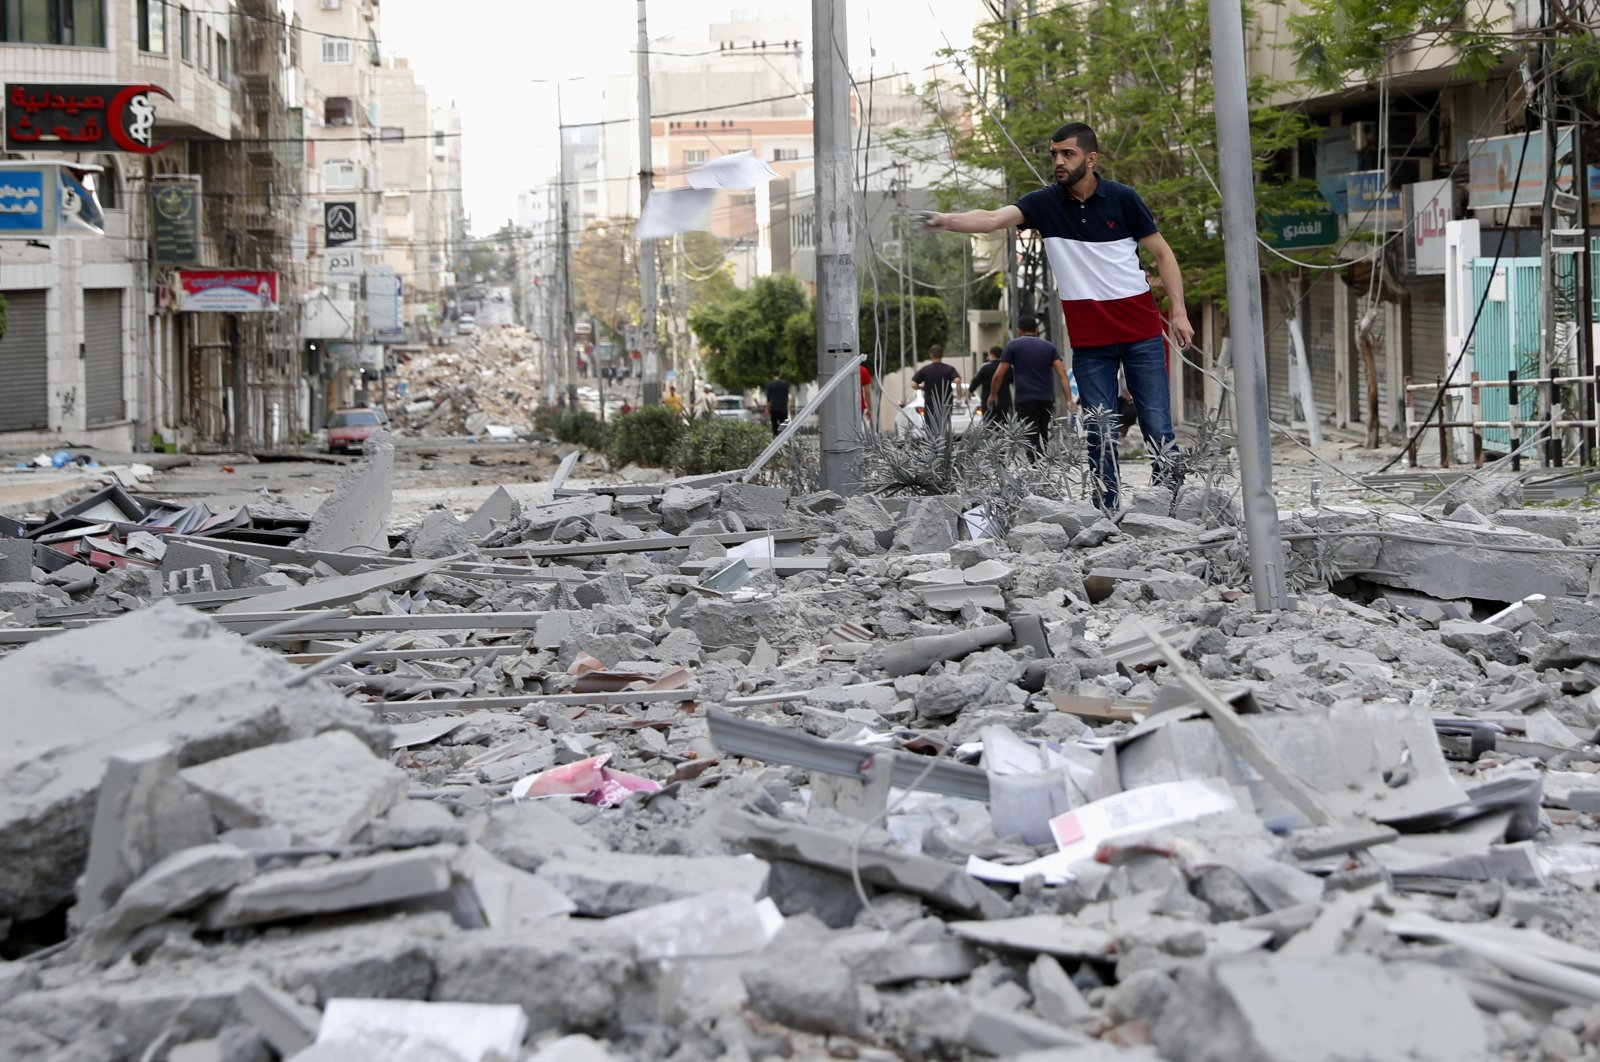 A man inspects the rubble following an Israeli airstrike on the upper floors of a commercial building near the Palestinian Health Ministry in Gaza City, Palestine, Monday, May 17, 2021. (AP Photo)